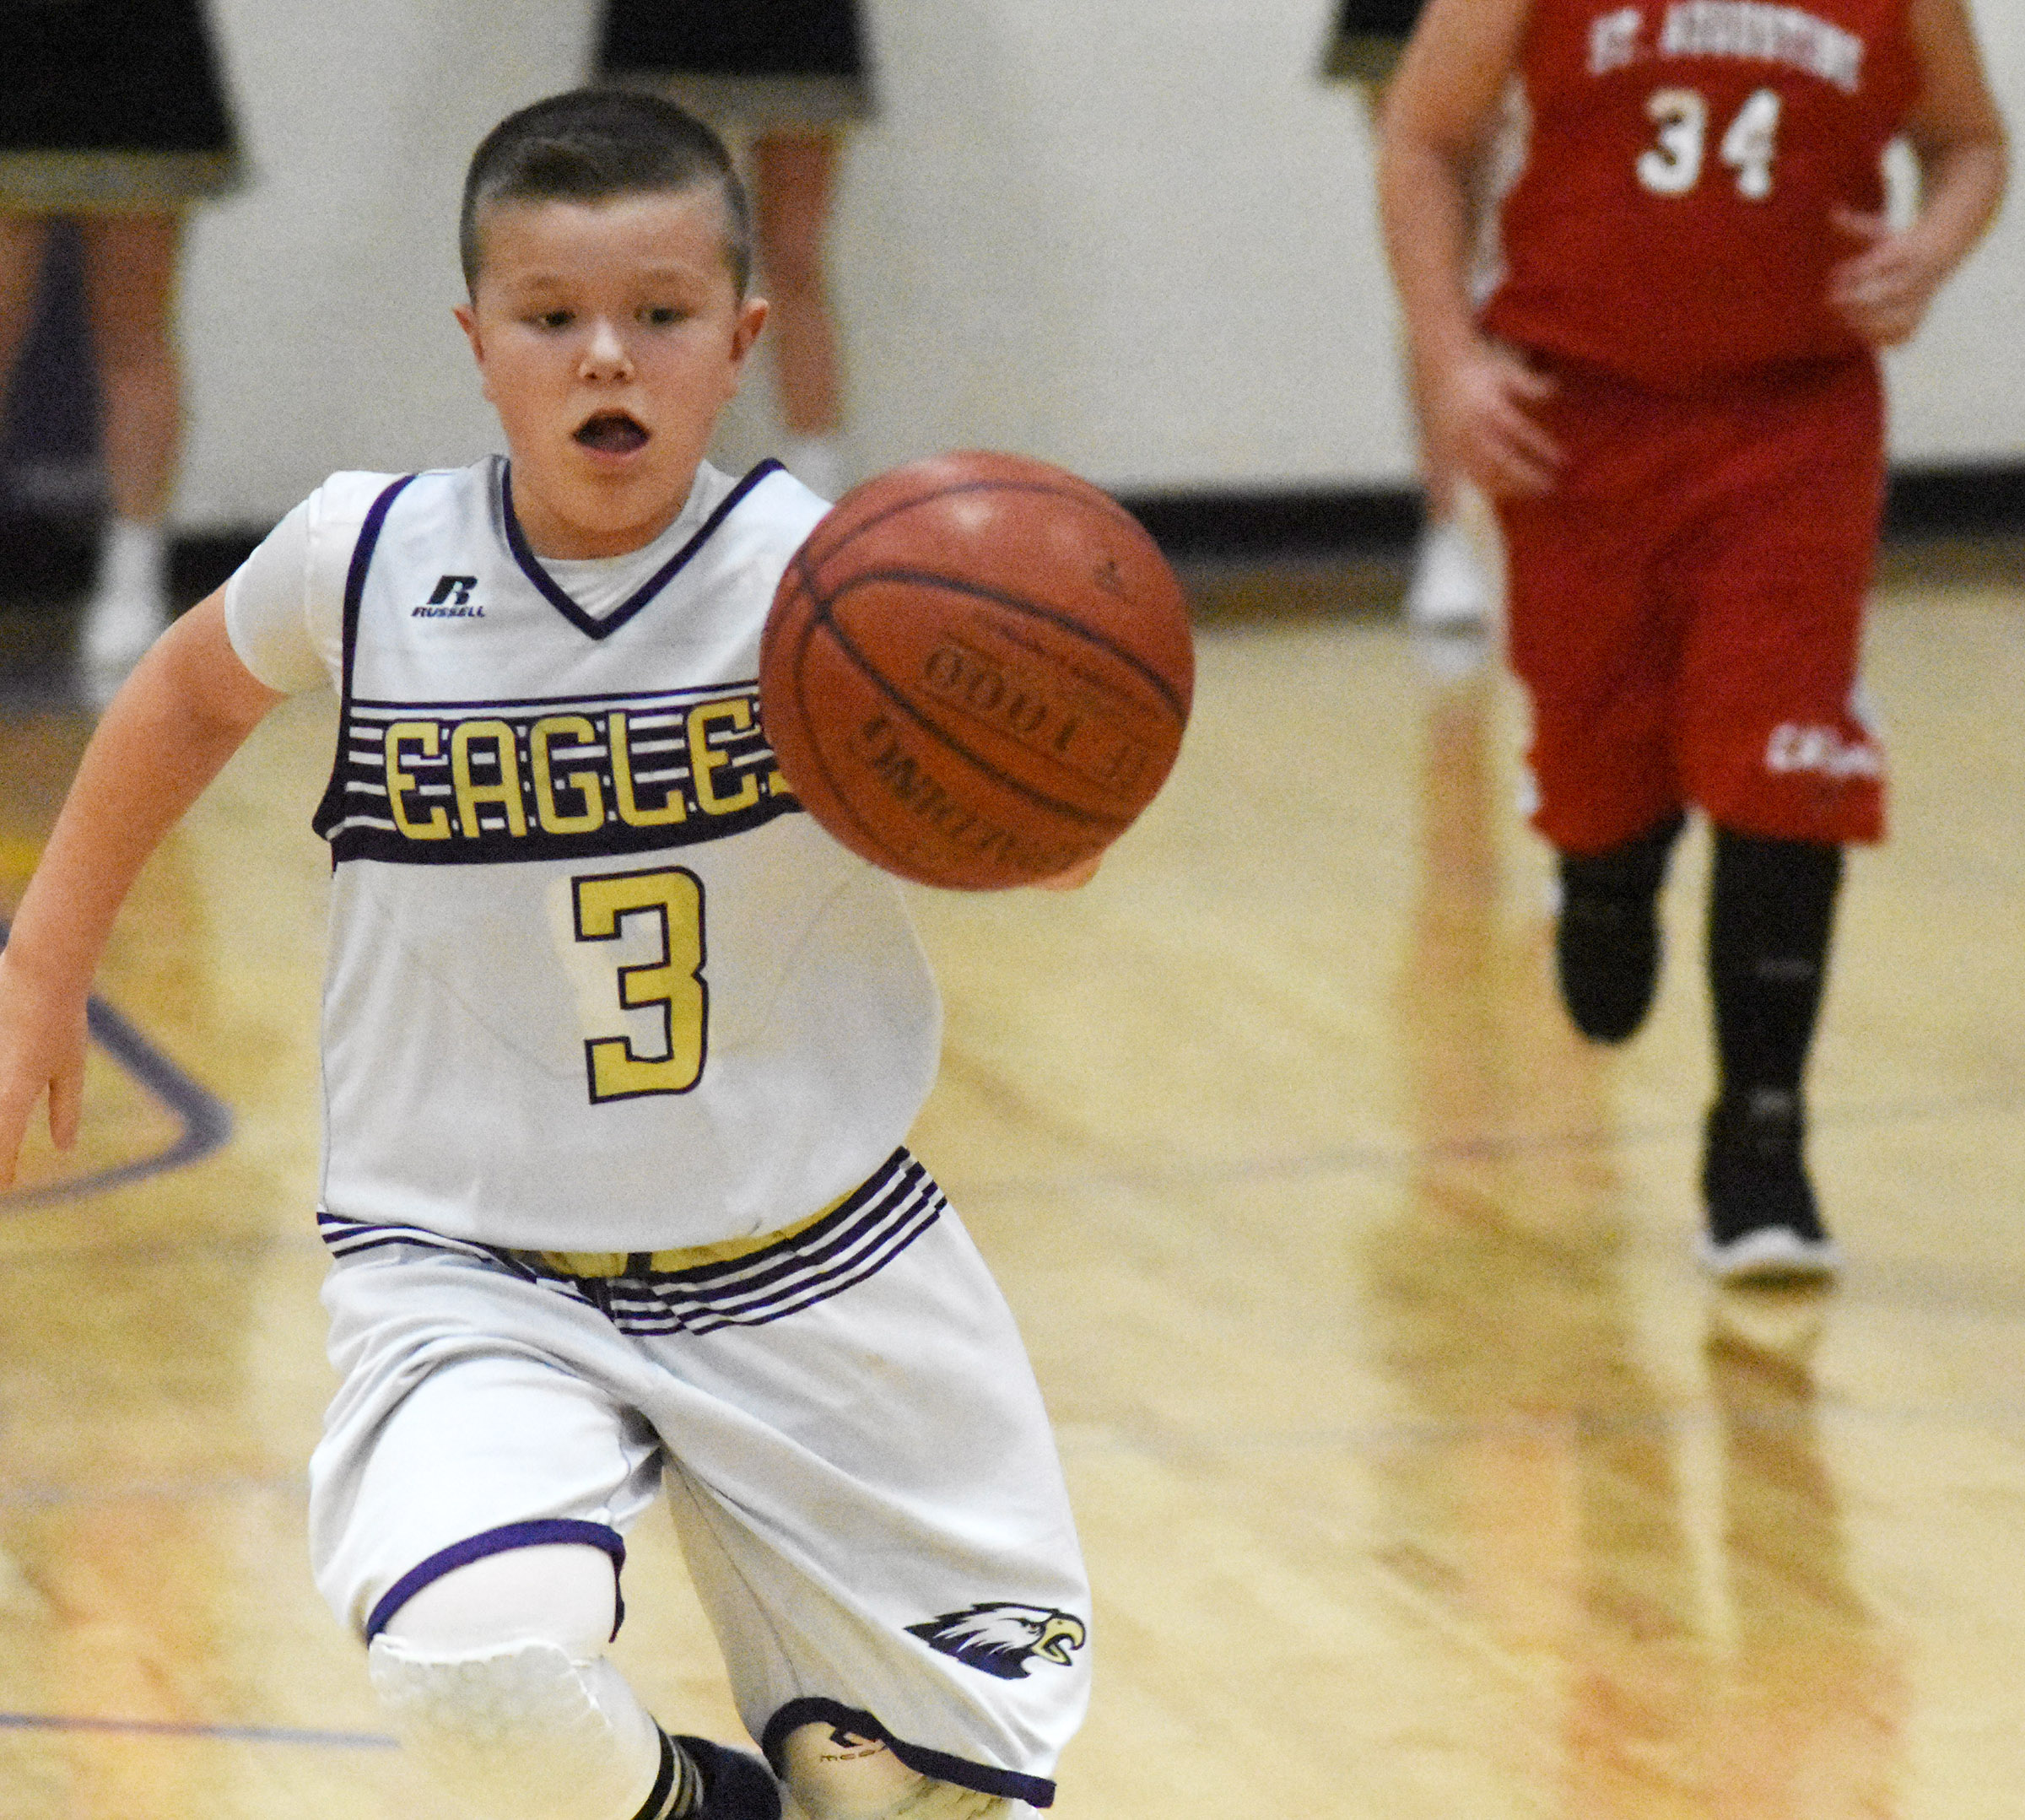 Campbellsville Elementary School fourth-grader Cayton Lawhorn dribbles.